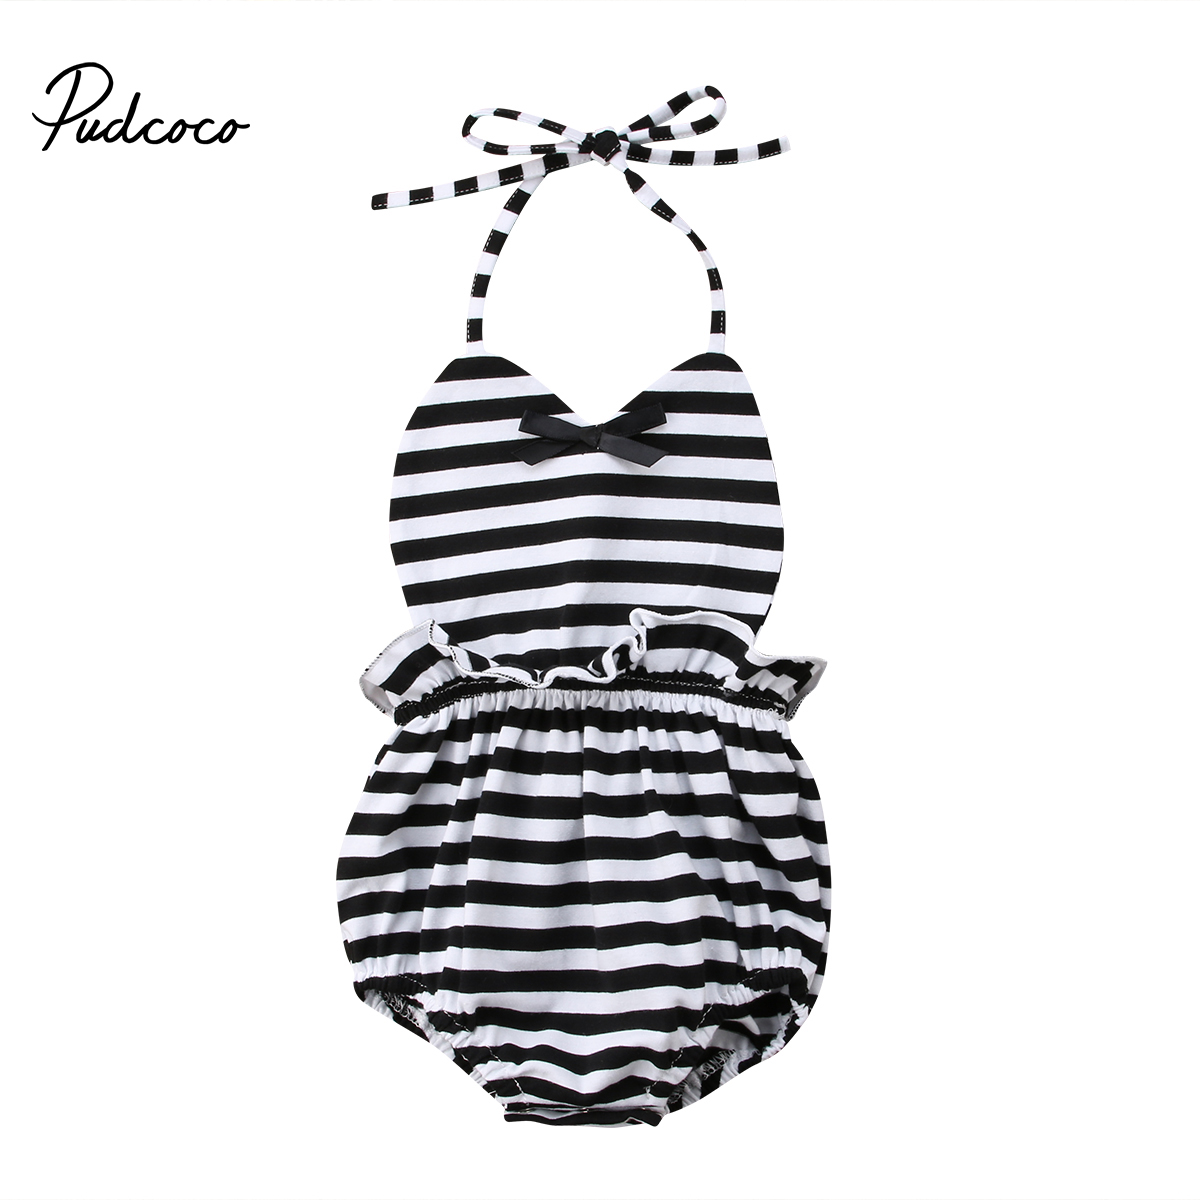 Pudcoco Newborn Baby Girl Romper Sleeveless Romper Infant Girl Jumpsuit Striped Outfits Sunsuit Clothes 2017 floral newborn baby girl clothes ruffles romper baby bodysuit headband 2pcs outfits sunsuit children set